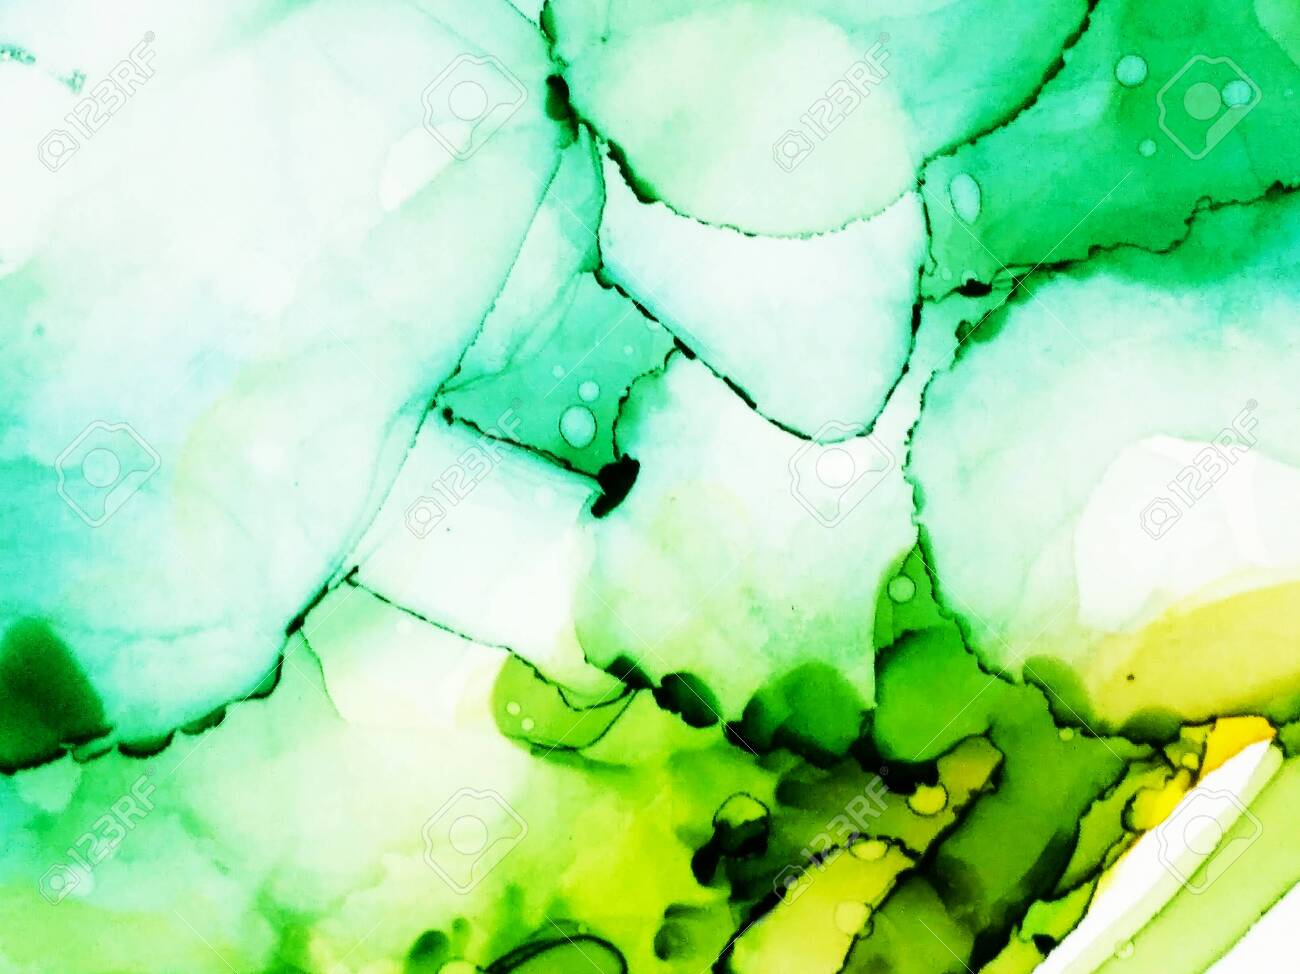 Alcohol Ink Artwork Ink Paint Texture Light Green Marble Slab Stock Photo Picture And Royalty Free Image Image 150230795